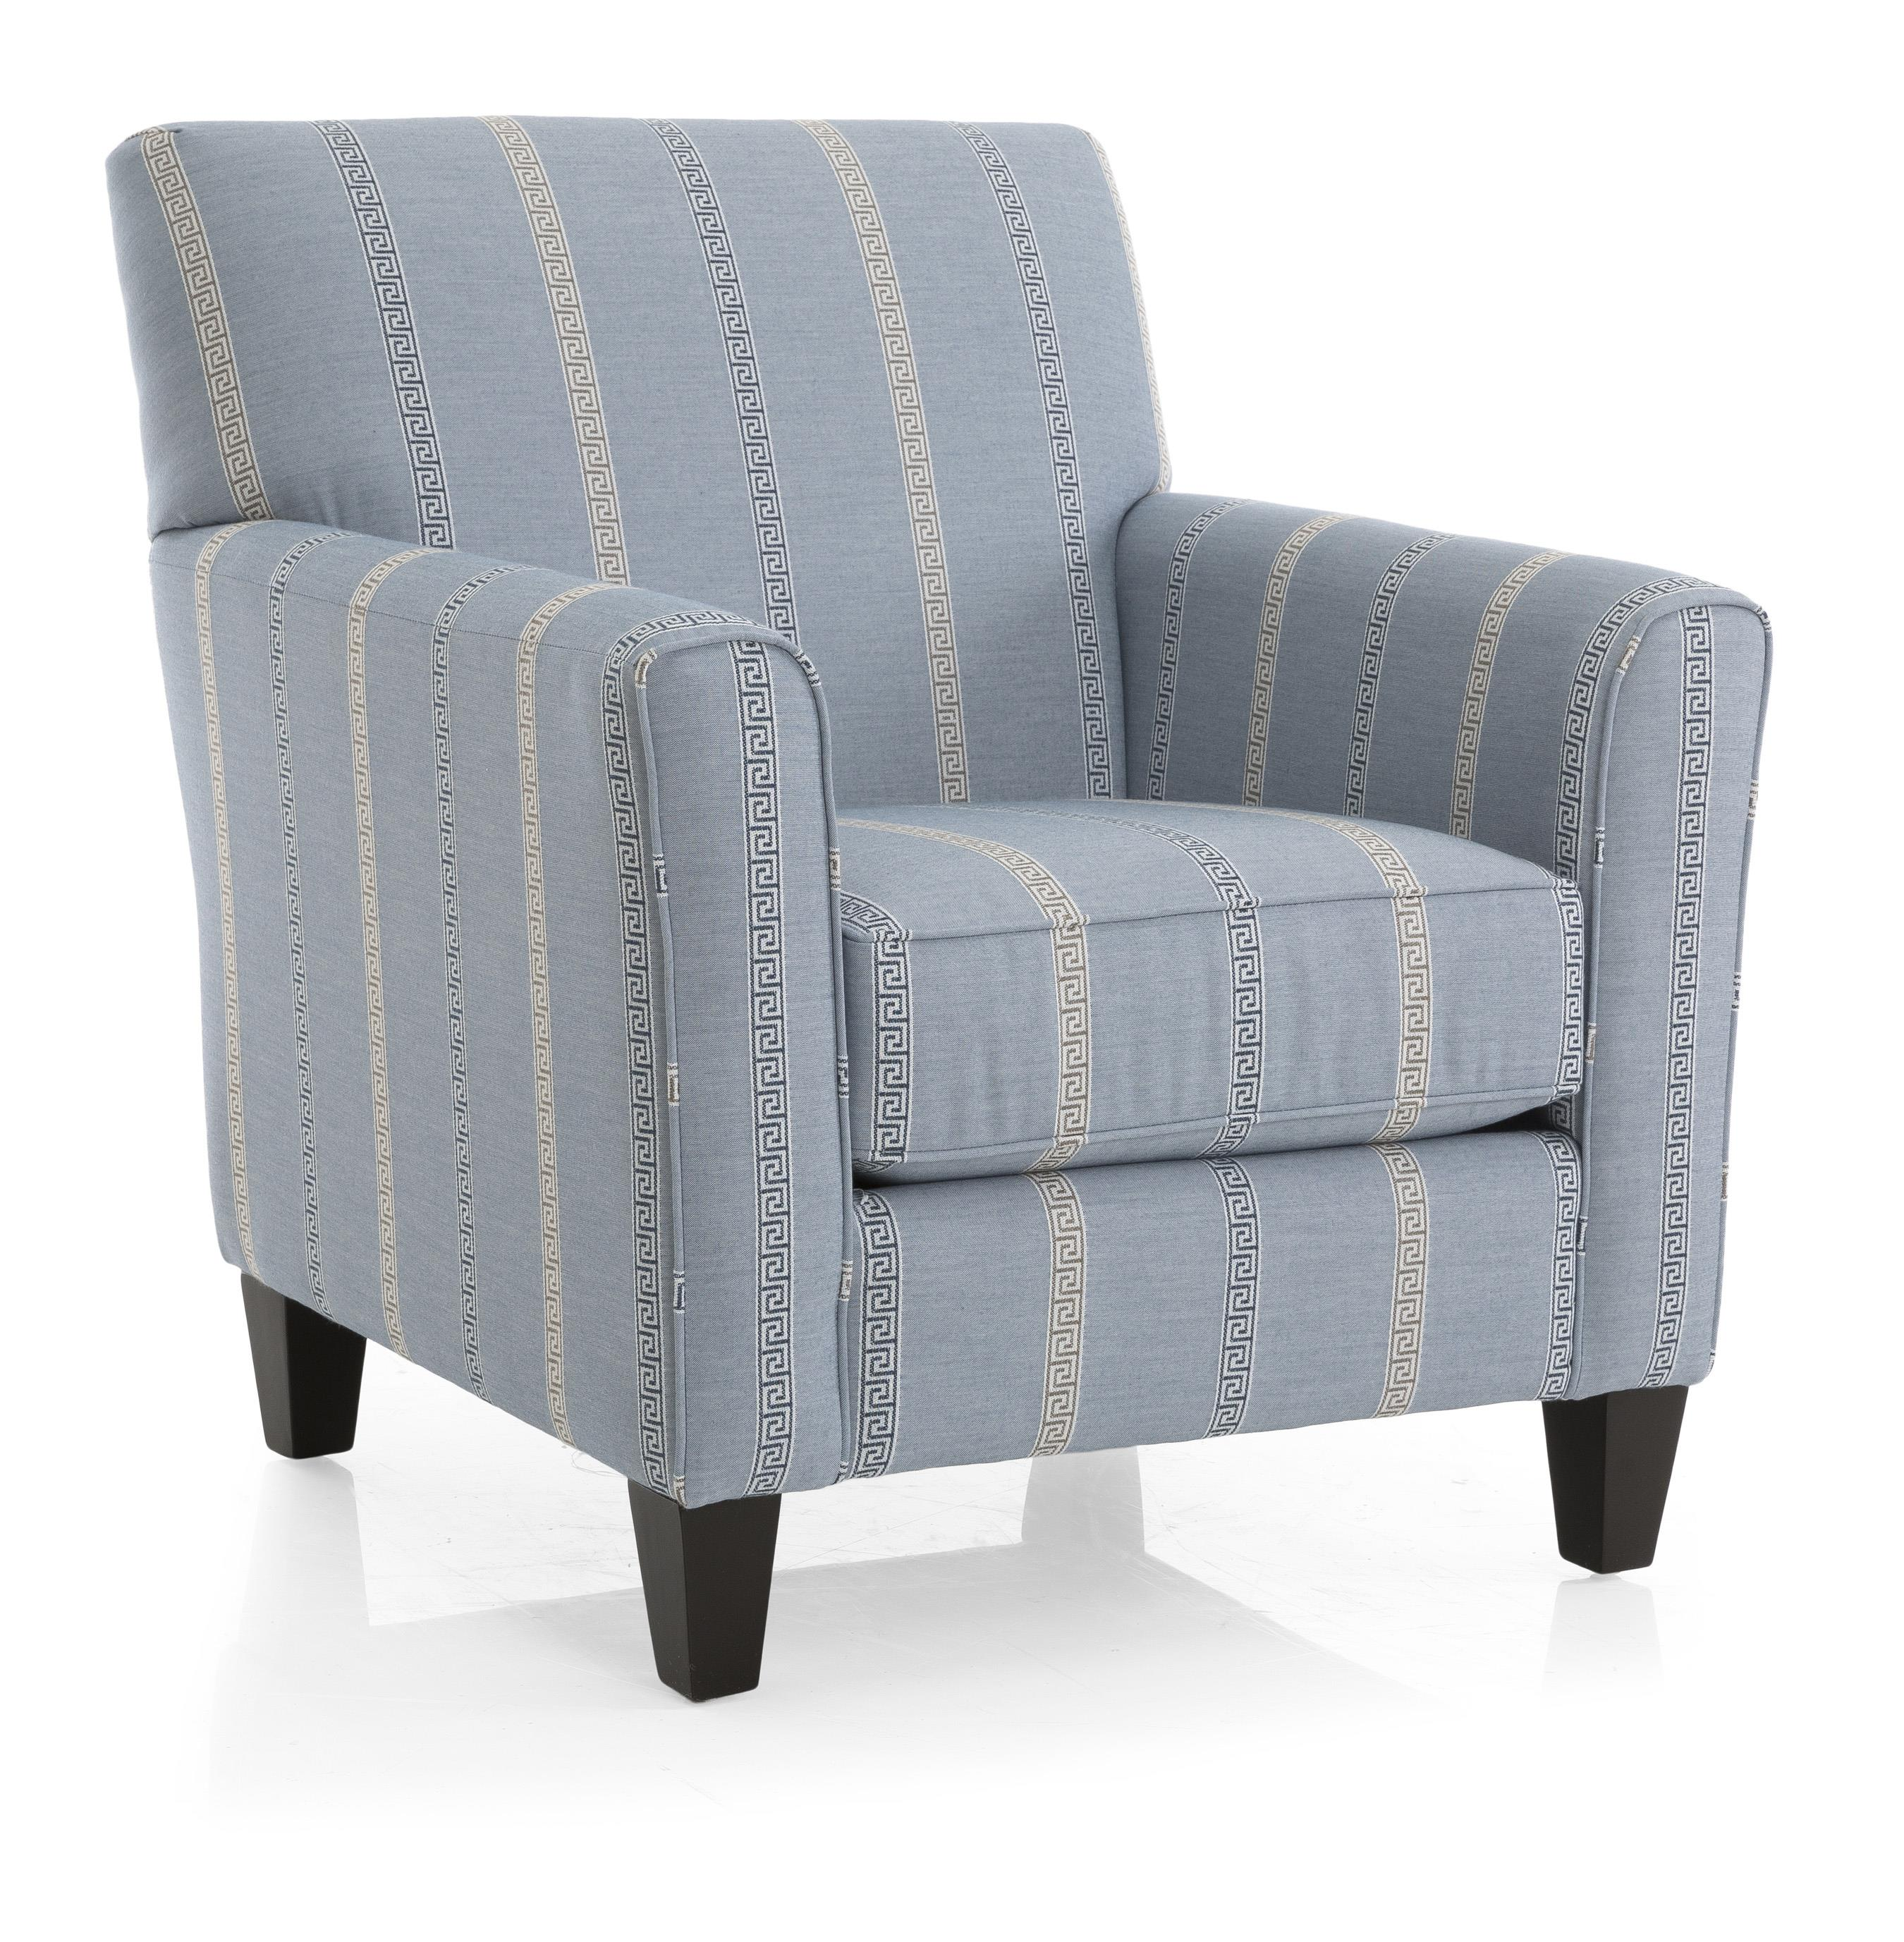 2468 Transitional Accent Chair by Decor-Rest at Upper Room Home Furnishings